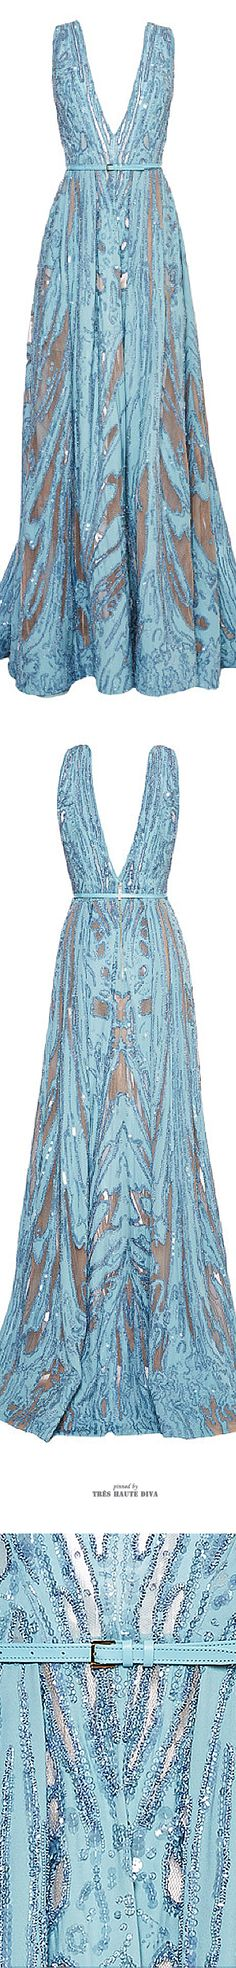 Ellie Saab Embroidered Light Blue Double Silk Georgette Gown ♔ SS 2015